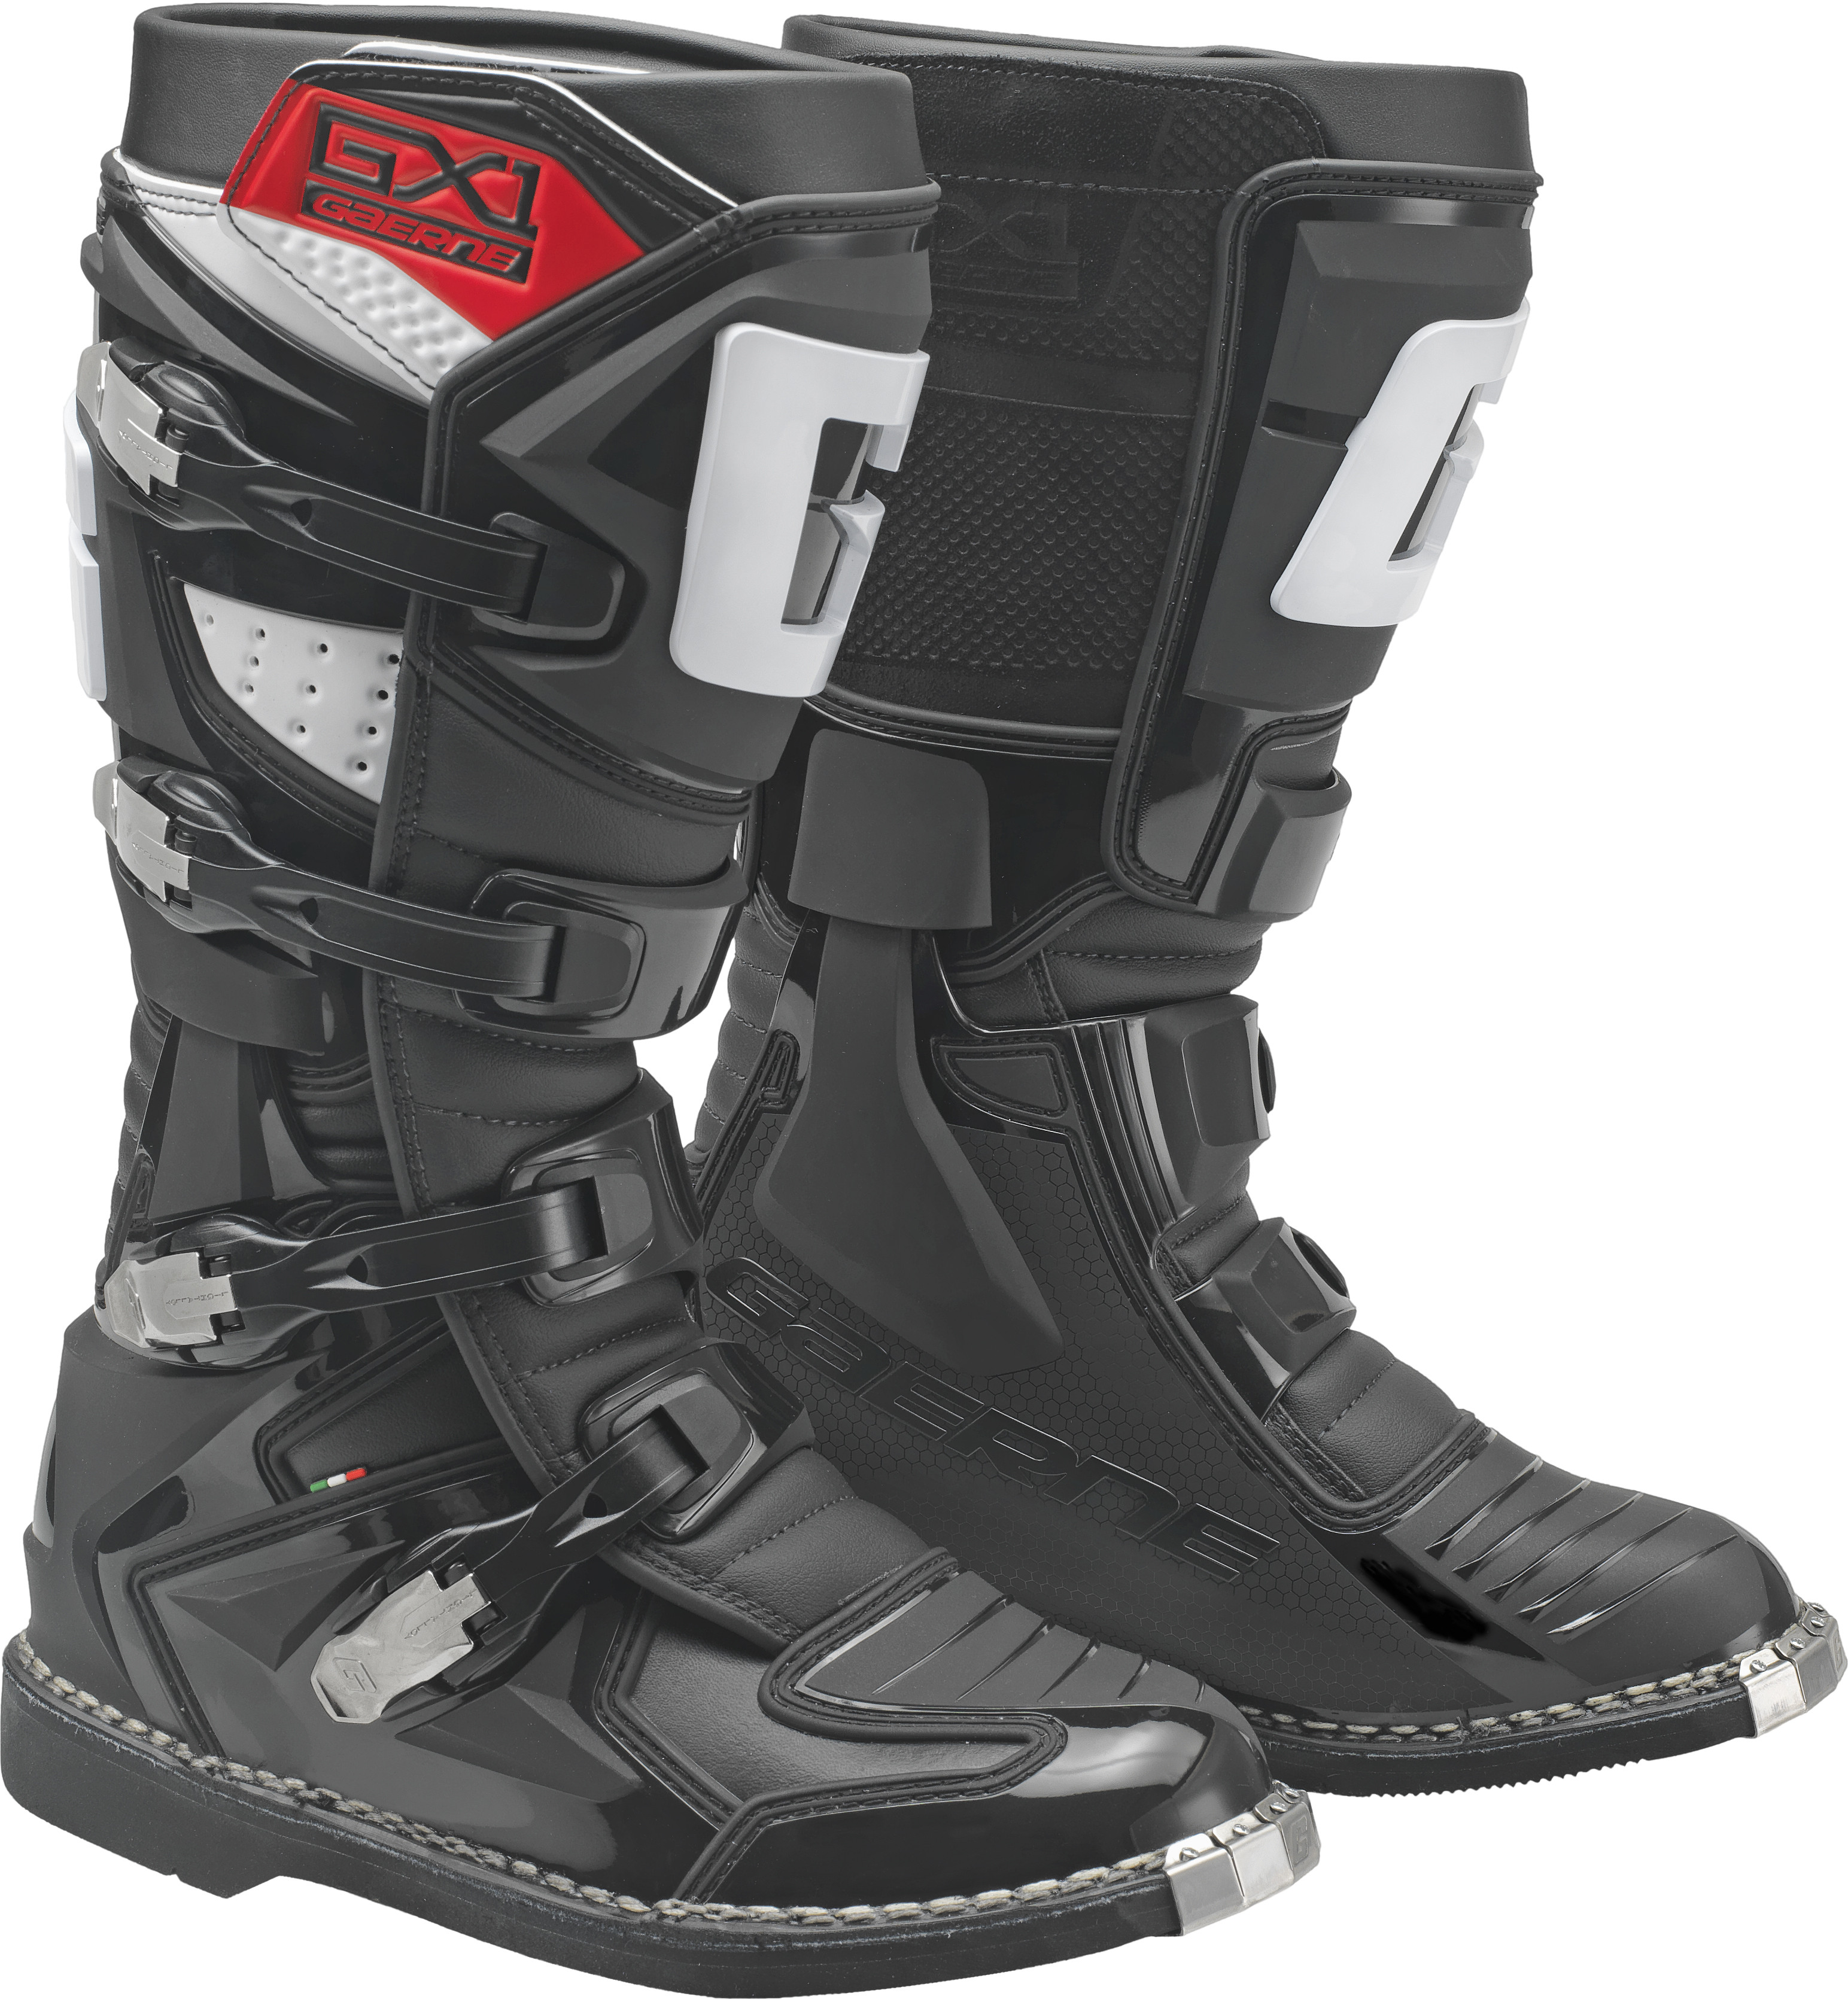 Gaerne USA 2019 GX-1 Motocross MX Boots All Colors /& Sizes